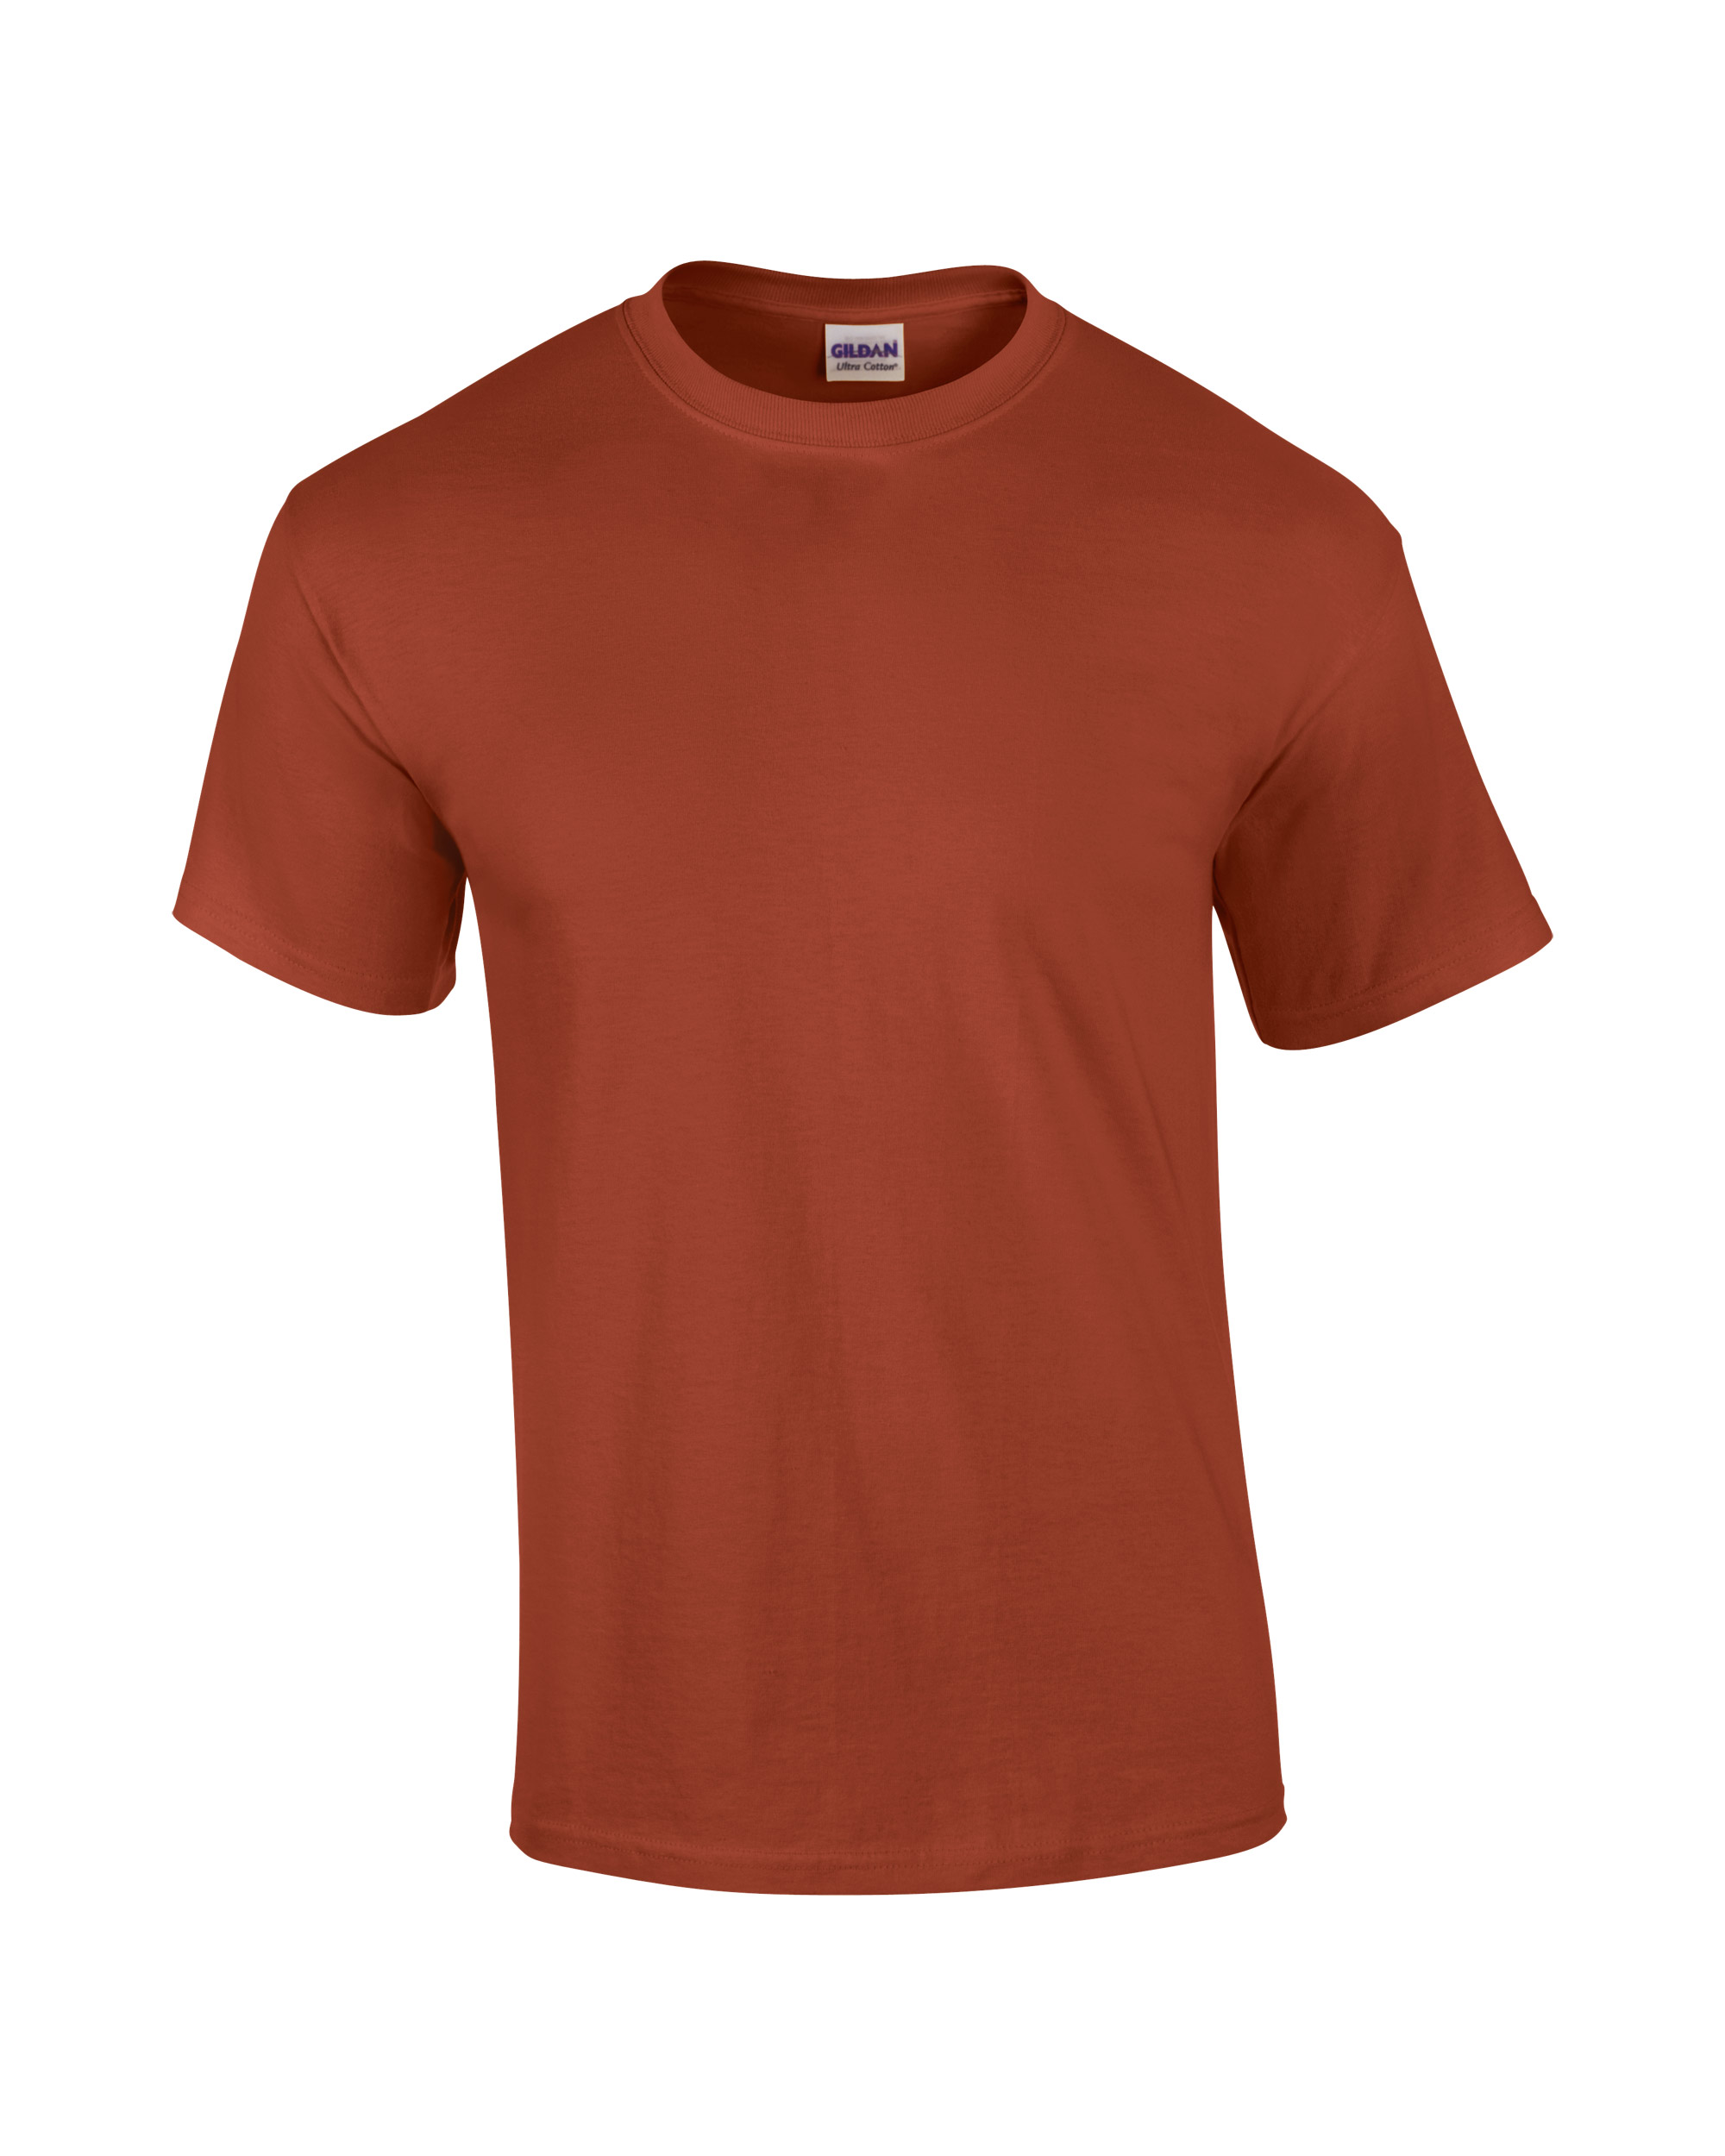 adc0c6956cc728 ... 2000-492C_rusty bronze-6.0 oz -ultra cotton- Mens shirts-ladies shirts  ...